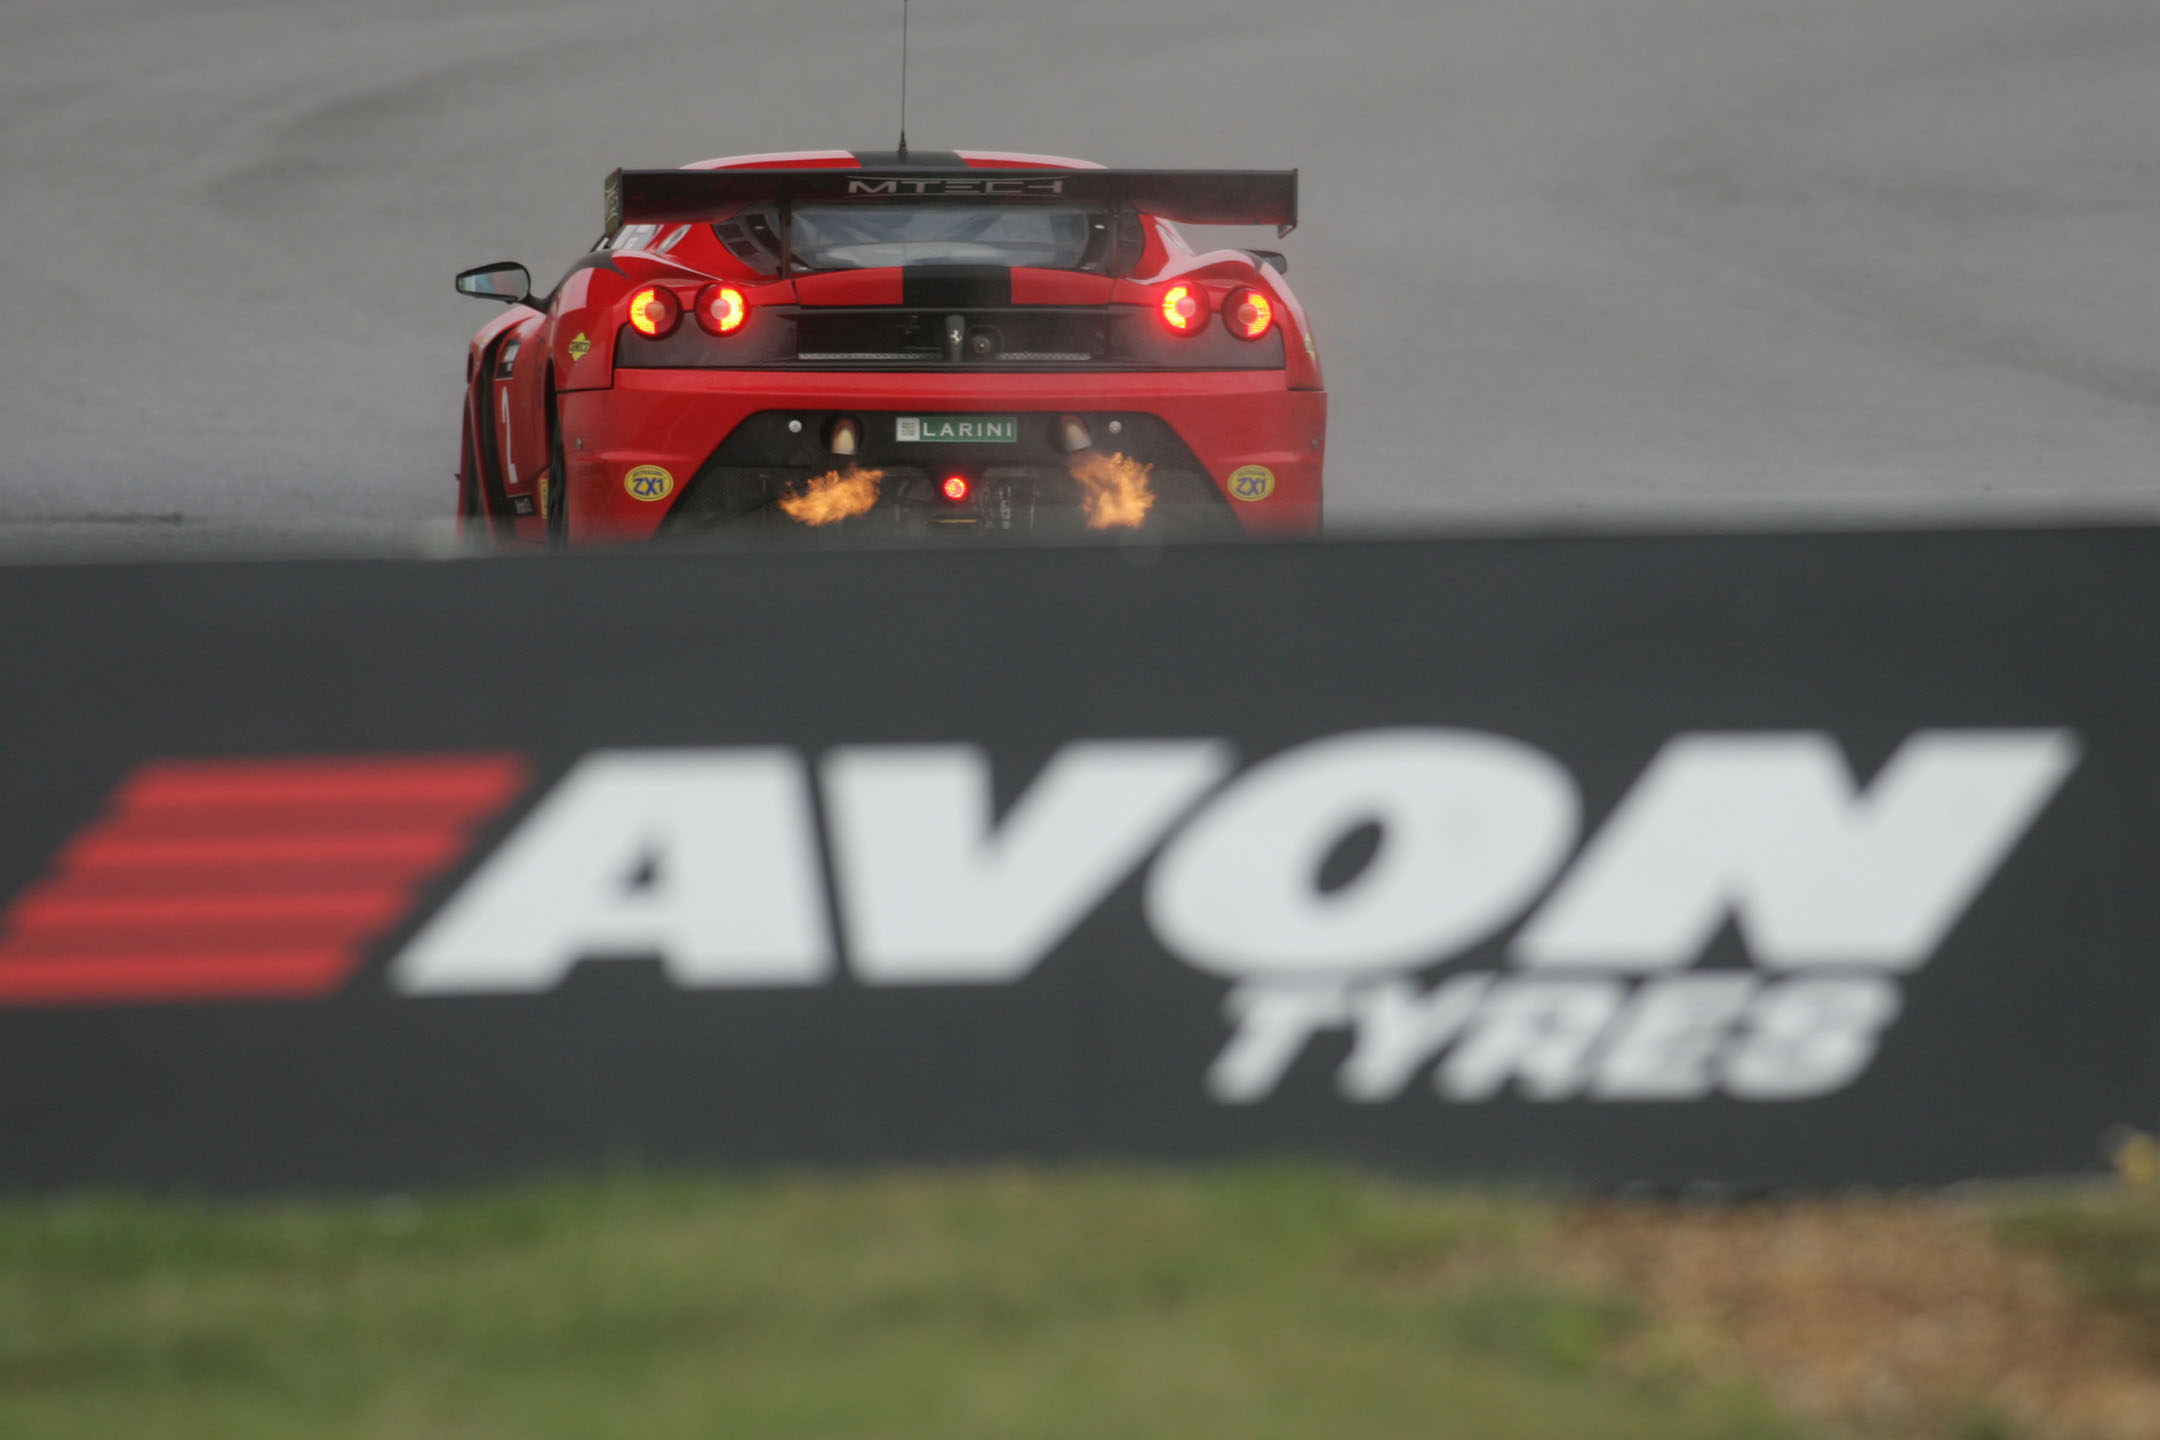 New four-year extension to Avon/British GT association « Motor Sport .